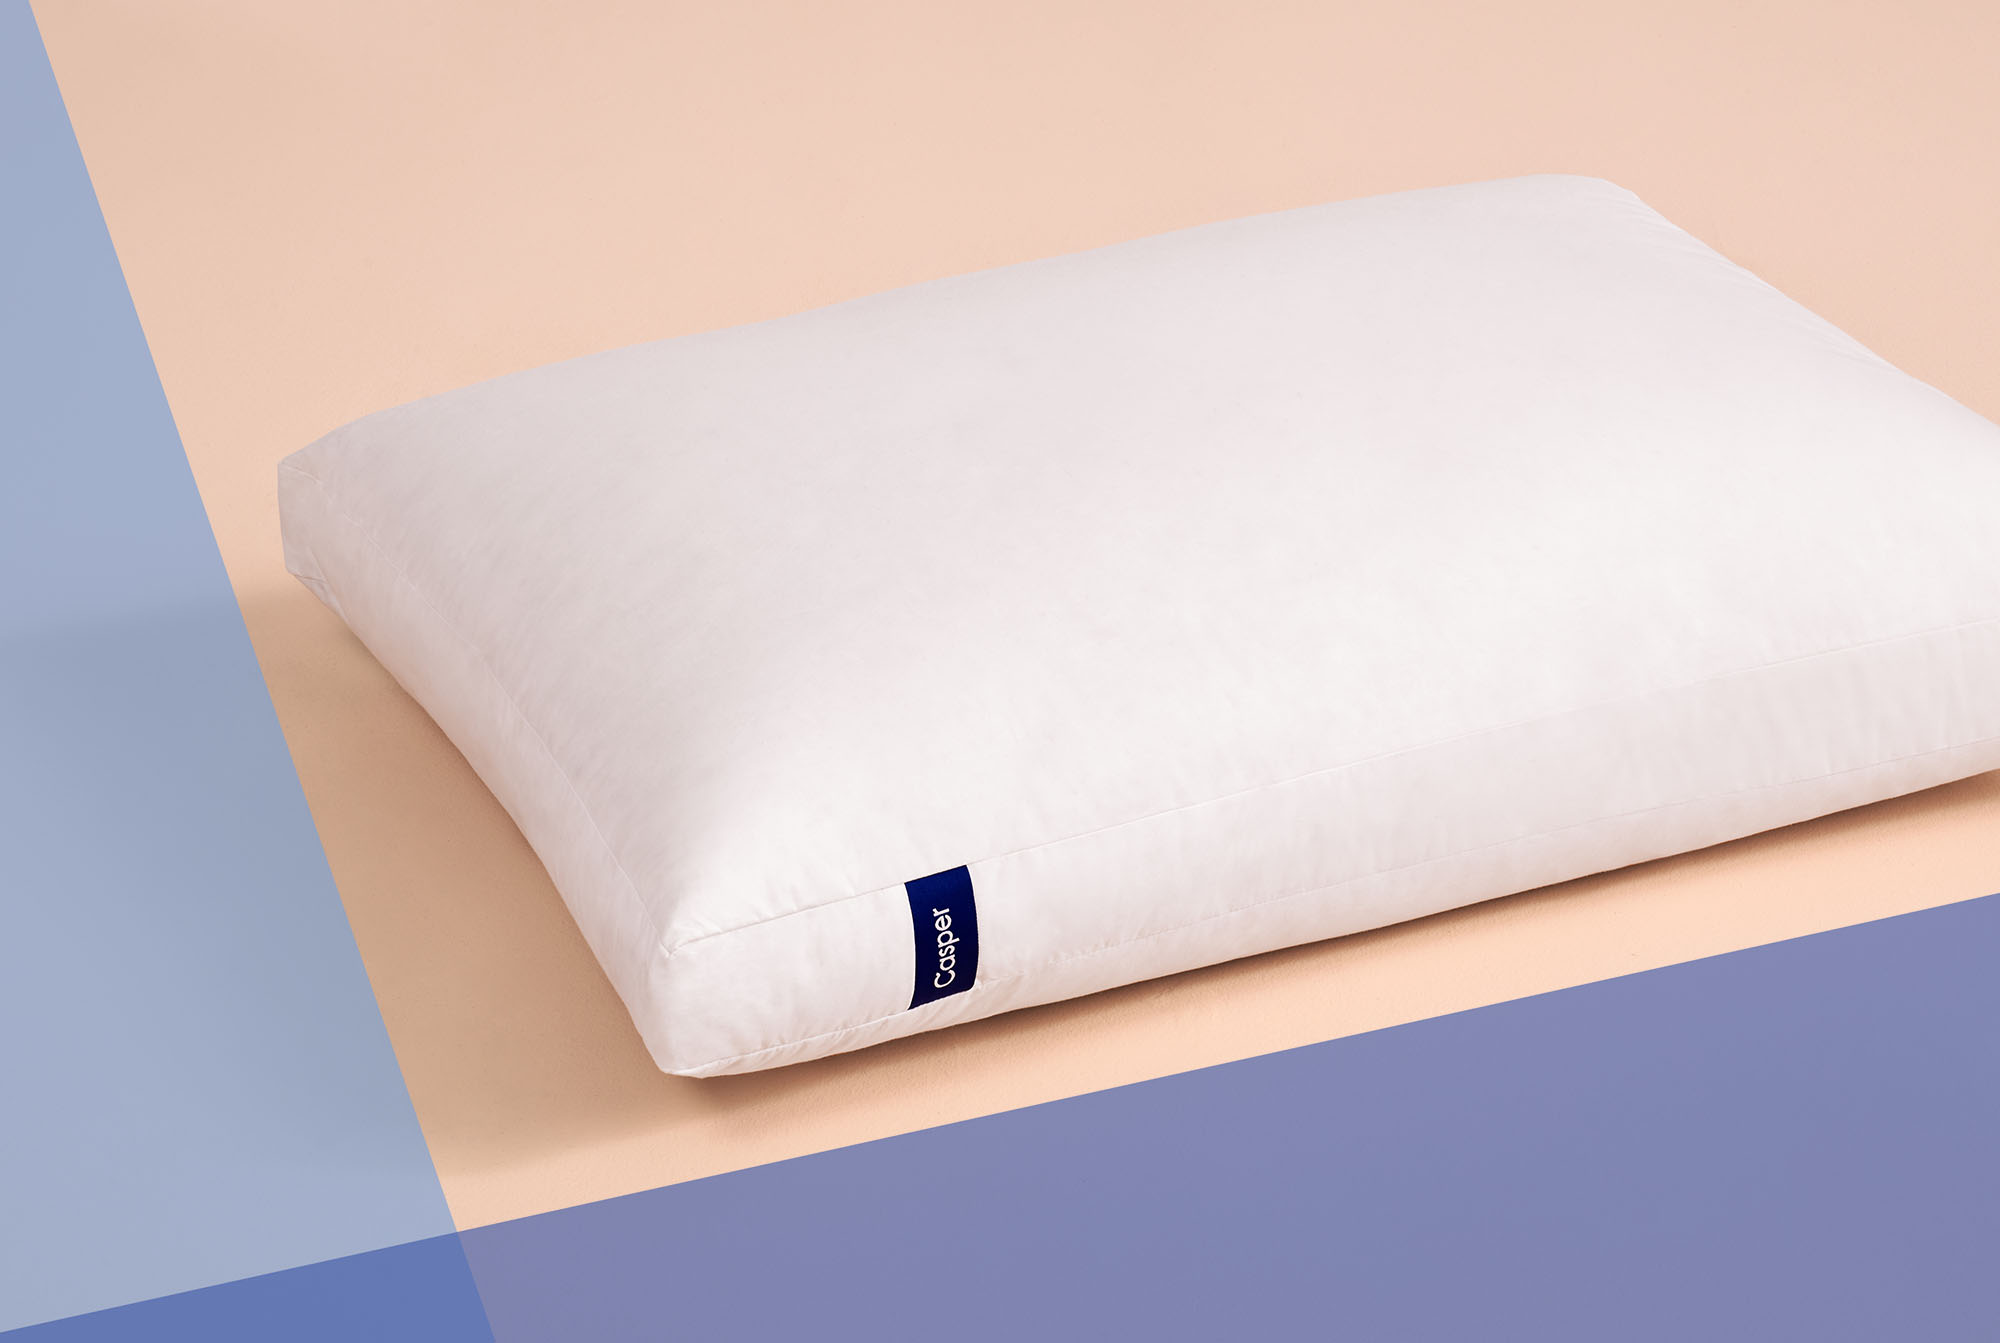 I Tried Casper's New Down Pillow That's Made for Every Sleep Position—and Now I'm Obsessed